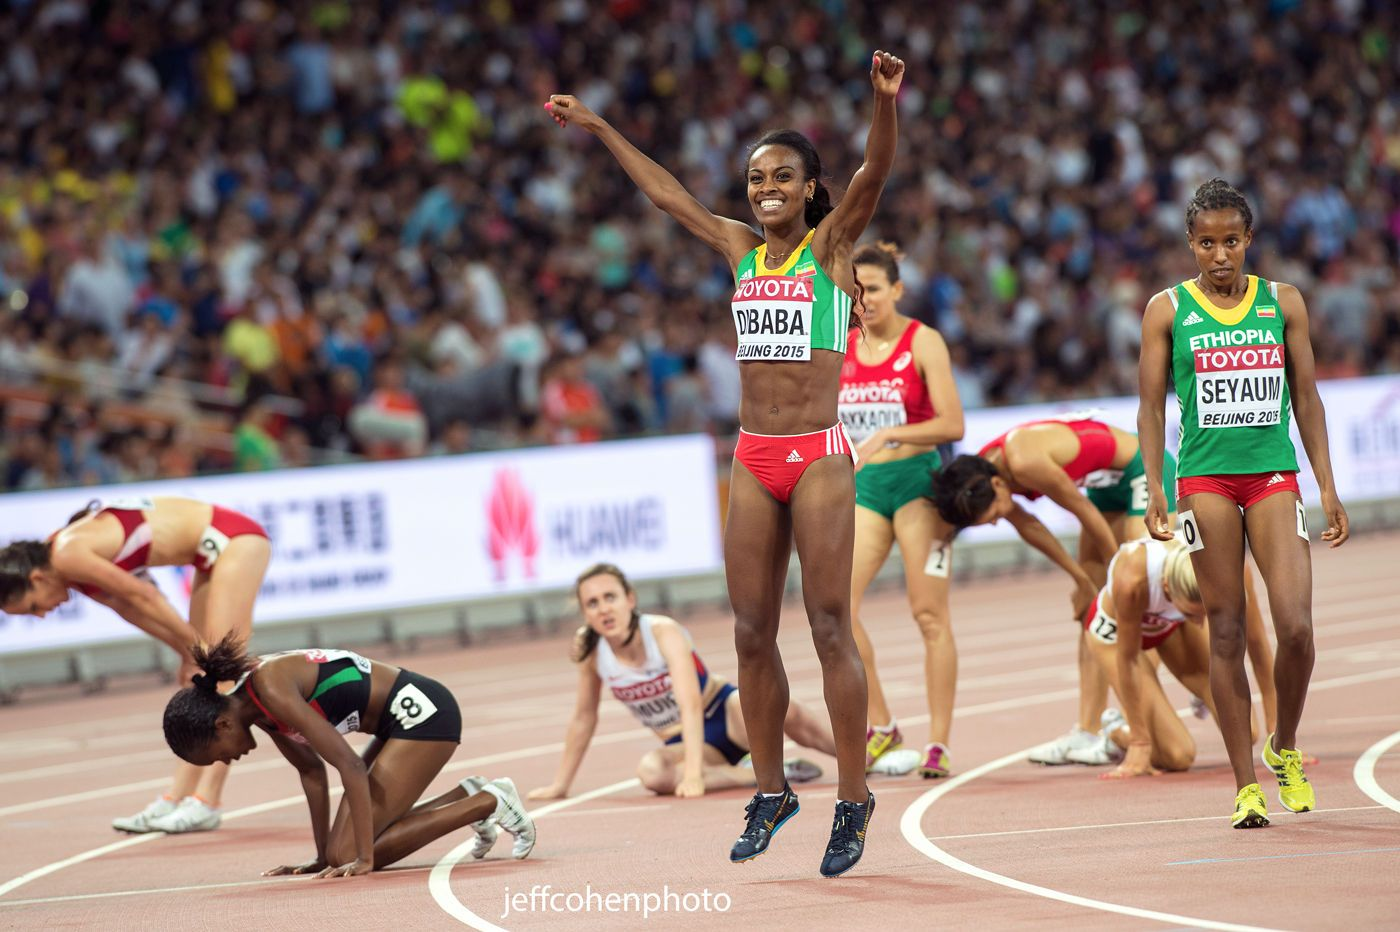 1beijing2015_night_4_dibaba_1500_win_jeff_cohen_photo_16198_web.jpg